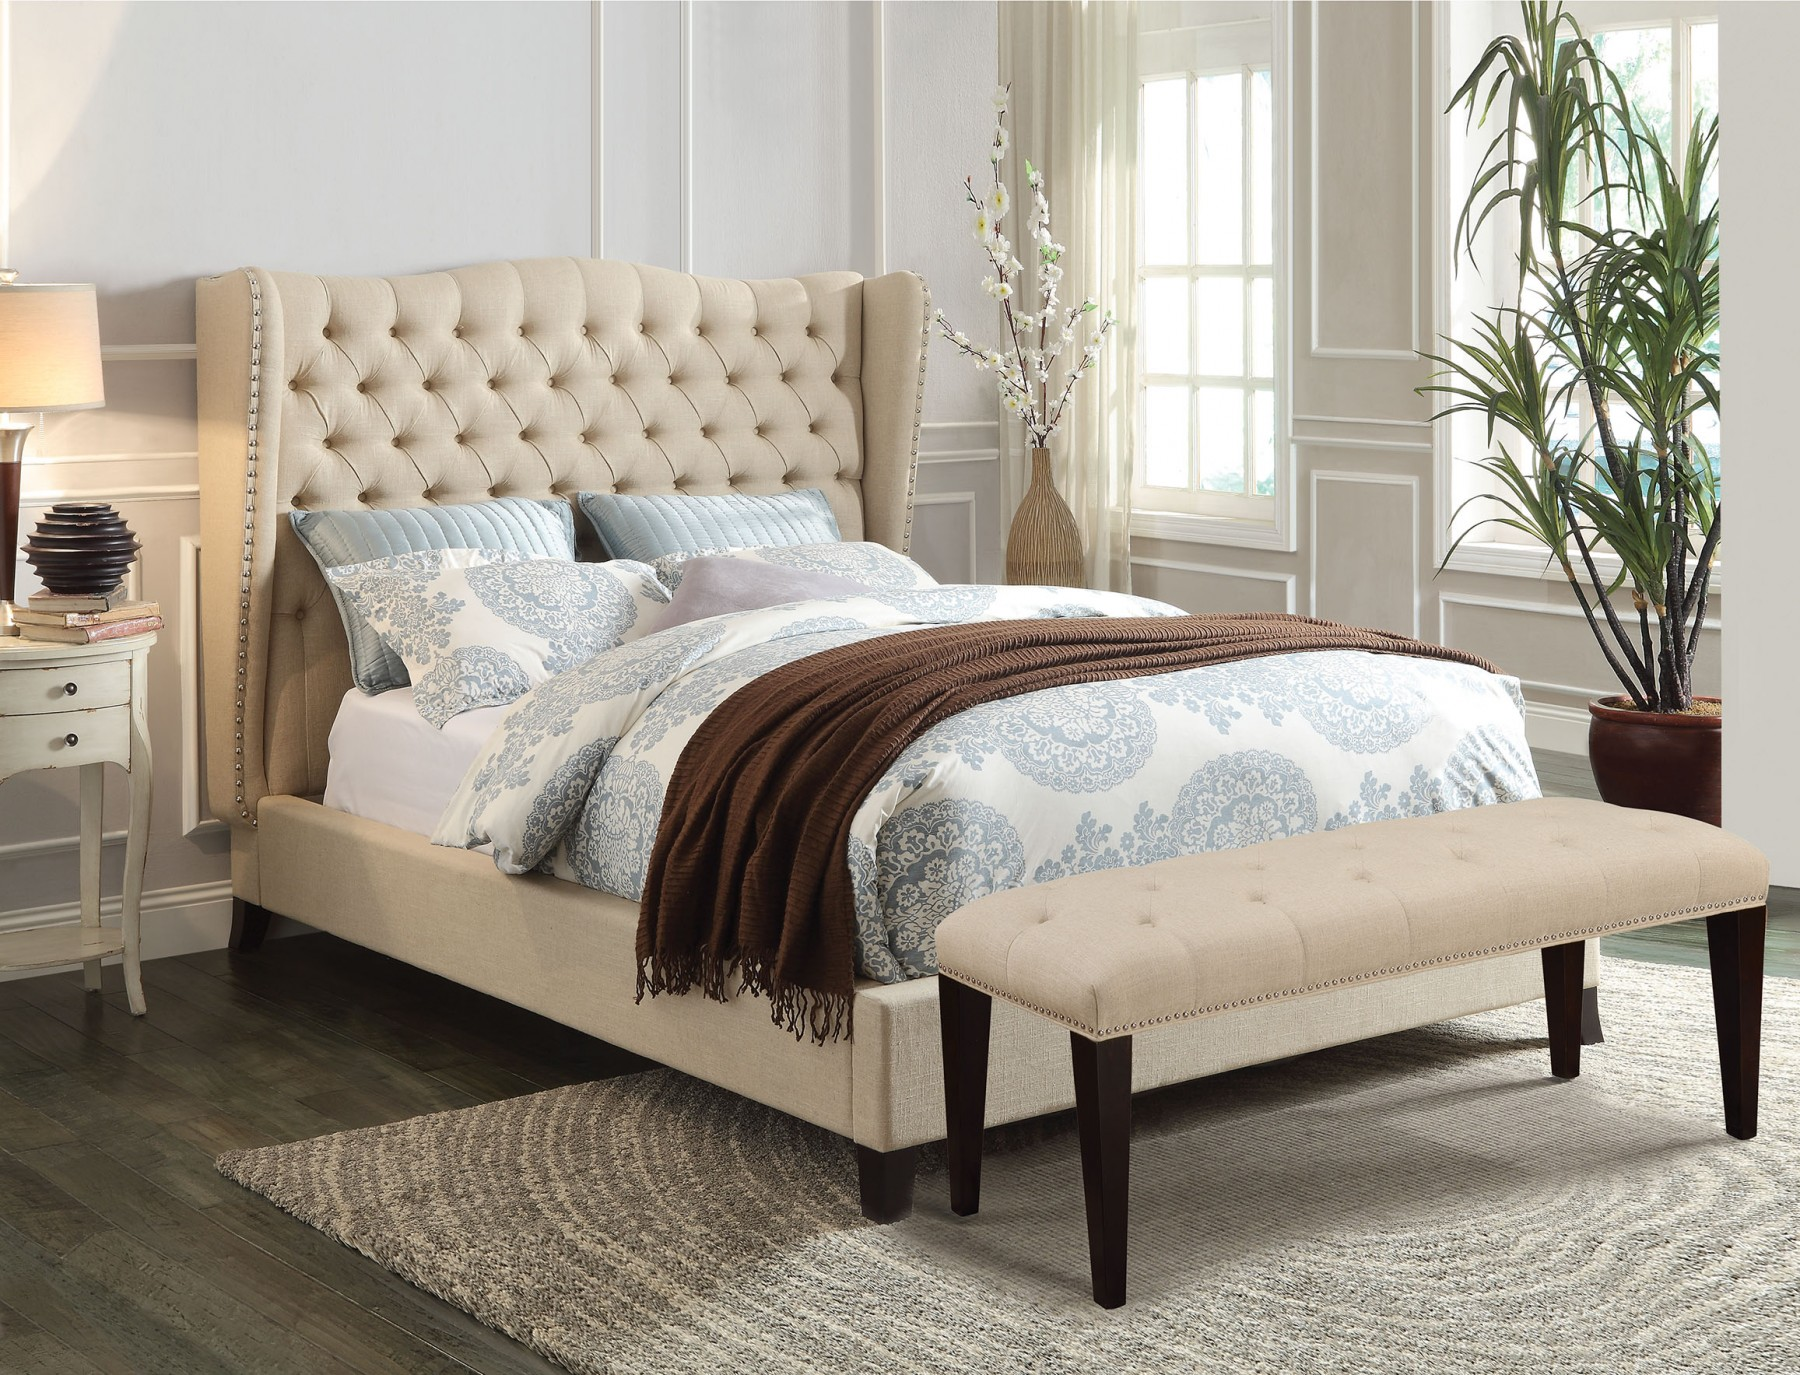 King Size Bed Throws Faye California King Size Bedroom Set Beige